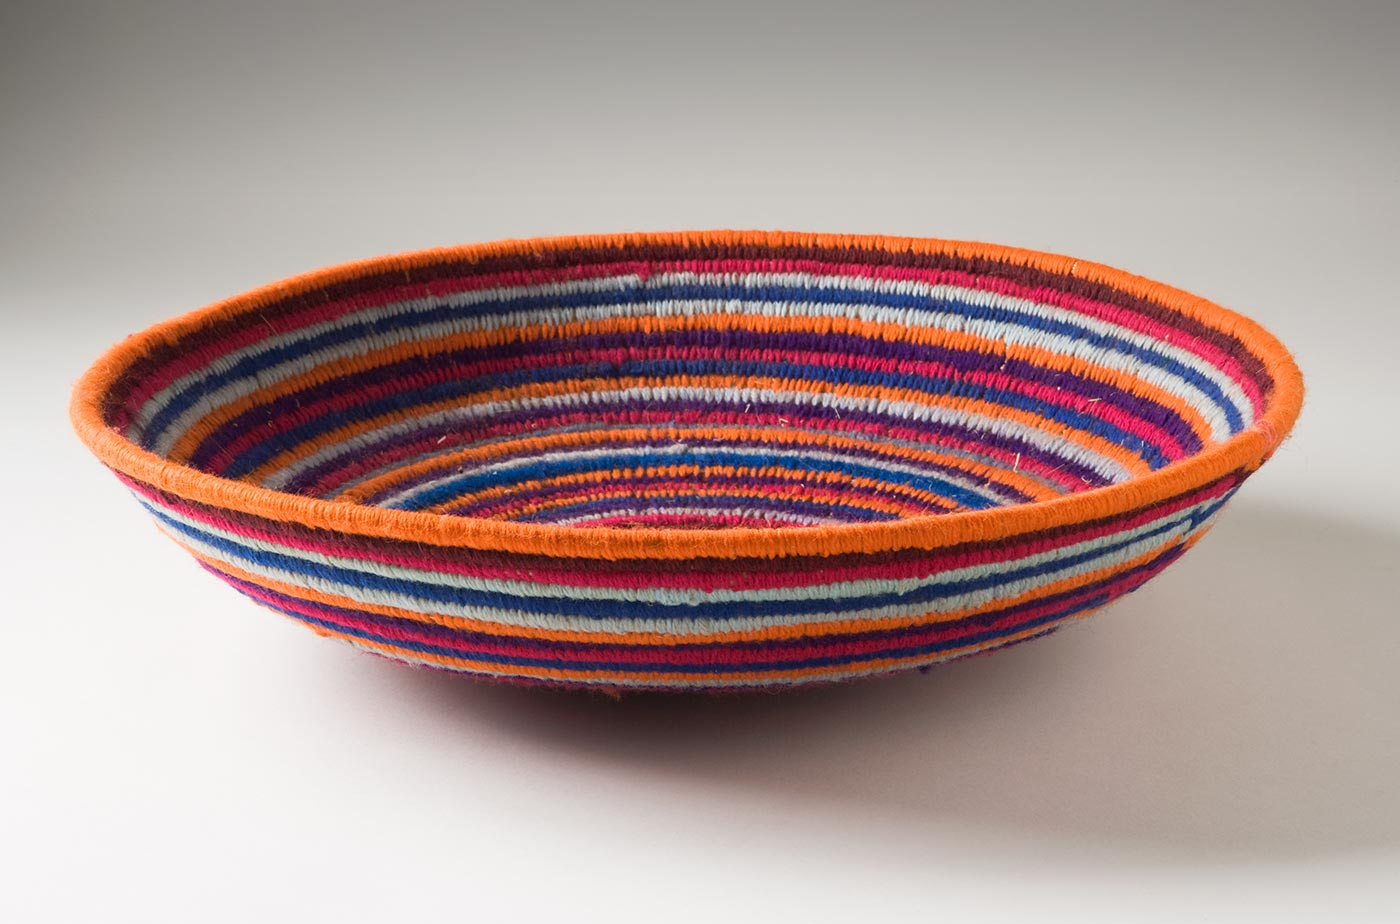 A multi-coloured circular coiled bowl-shaped basket made of yarn and plant fibre. The centre of the basket is in orange yarn followed by horizontal stripes of yarn in dark pink, purple, grey, blue, brown and orange. - click to view larger image